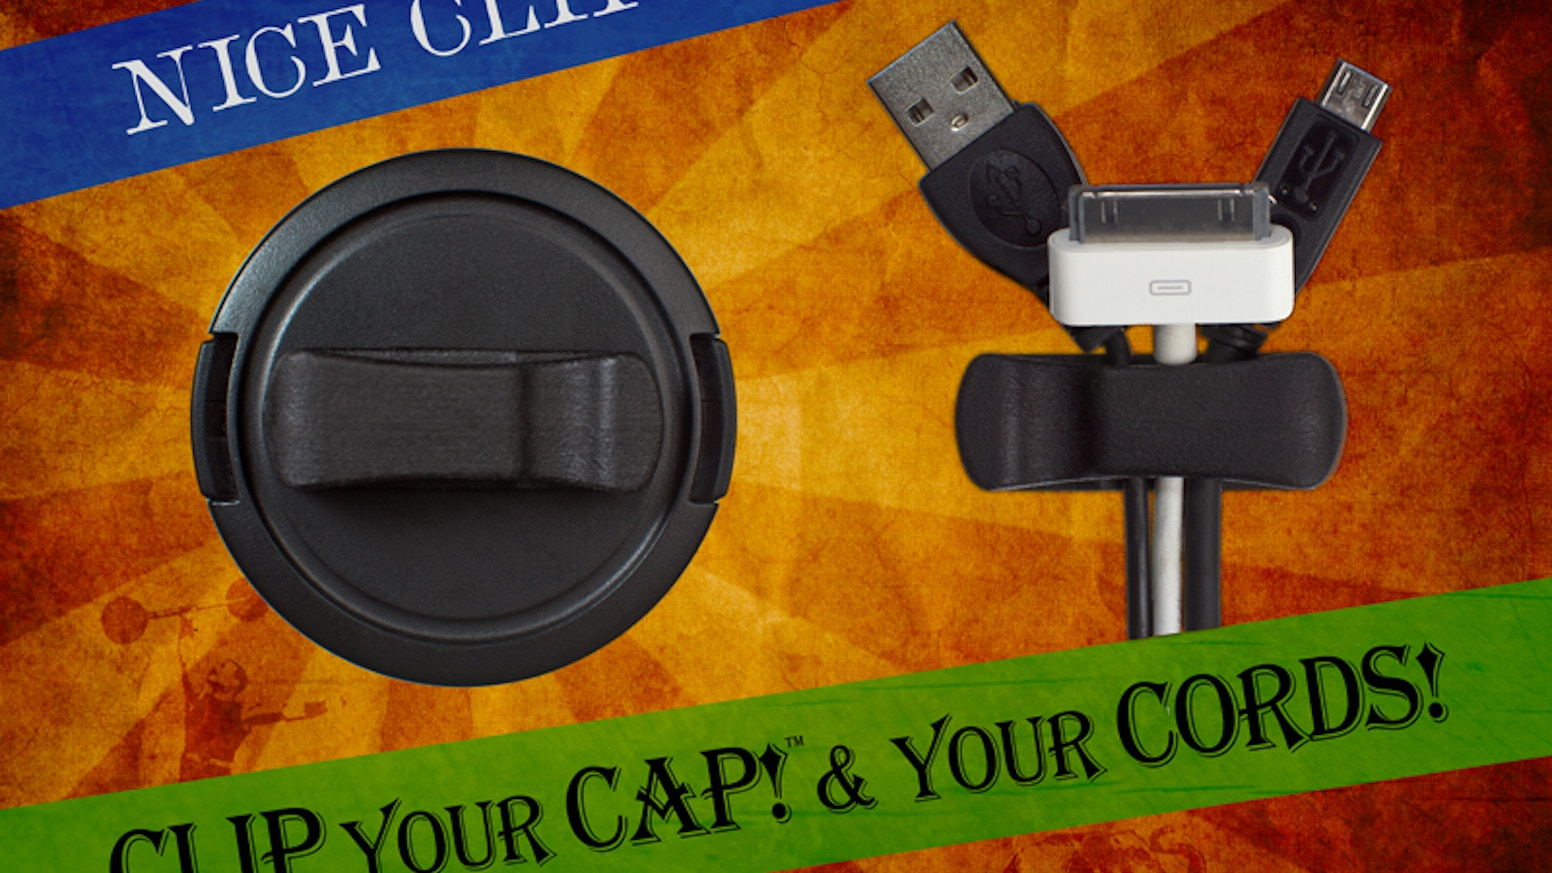 Clip your lens cap anywhere with our low profile clip. Or stick the clip to your desk & use it as the worlds smallest cord catcher!